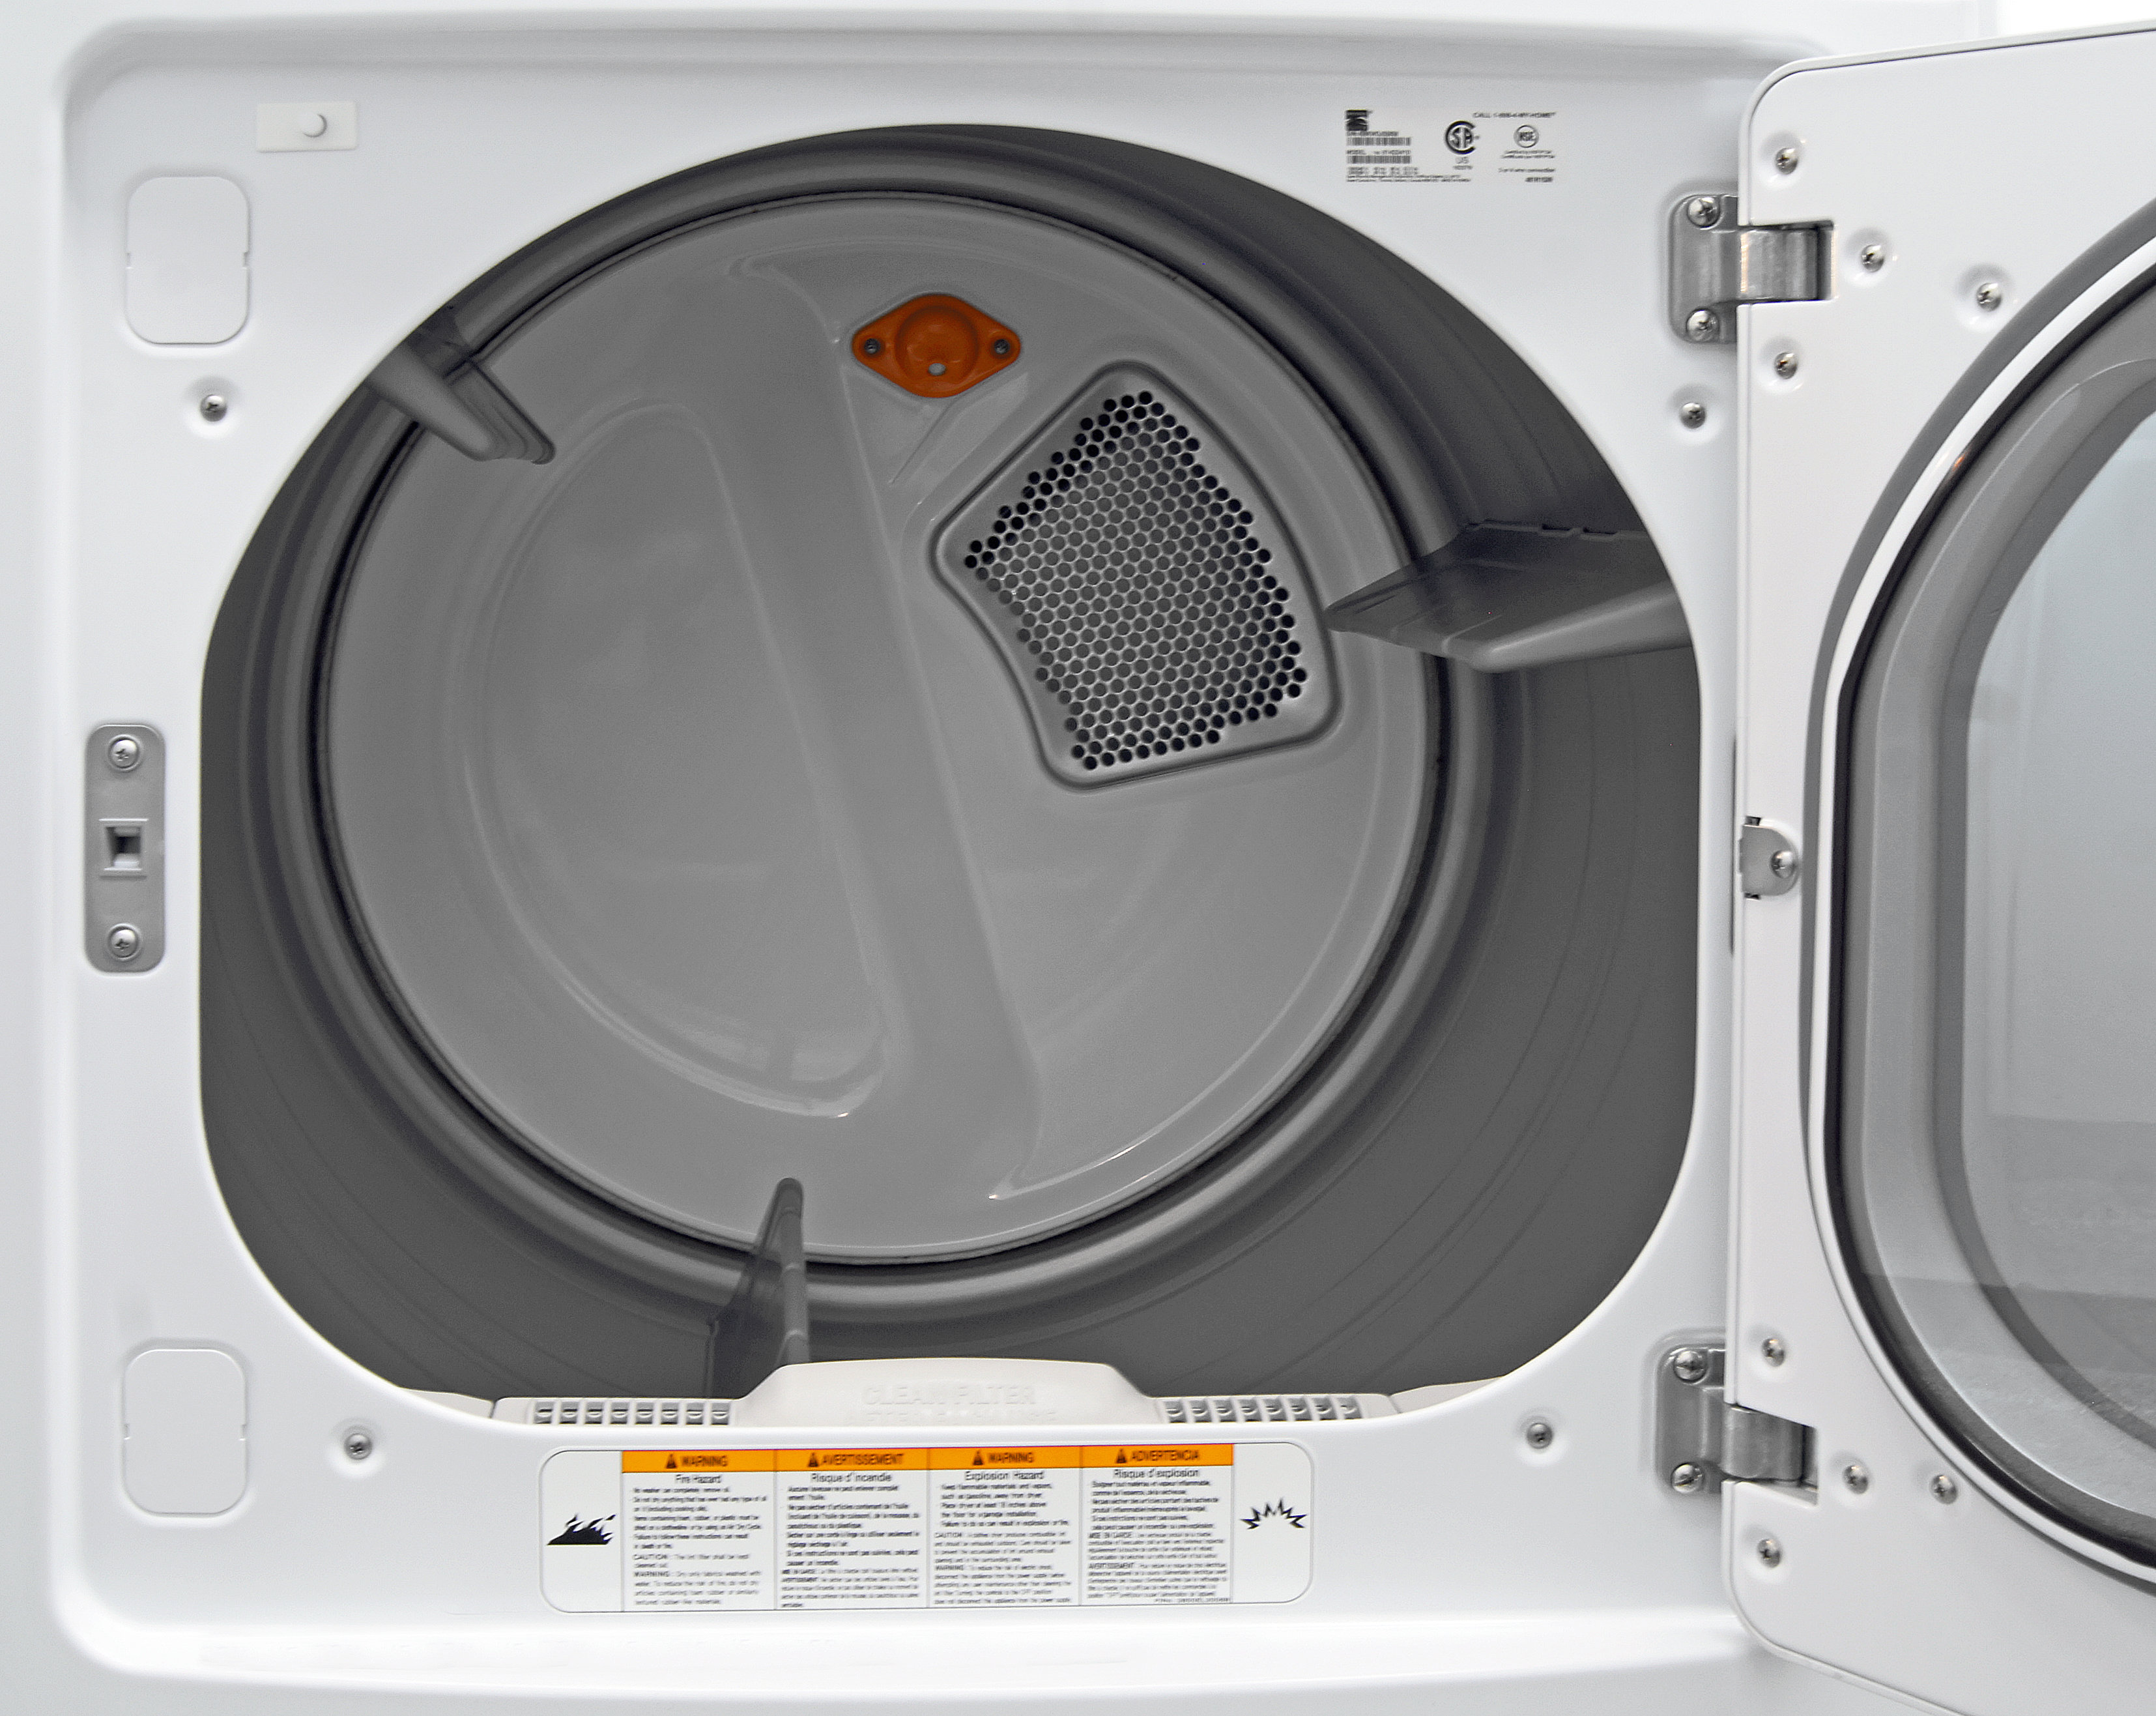 The Kenmore Elite 61422's stainless steel drum is resistant to flaking or rusting over time.